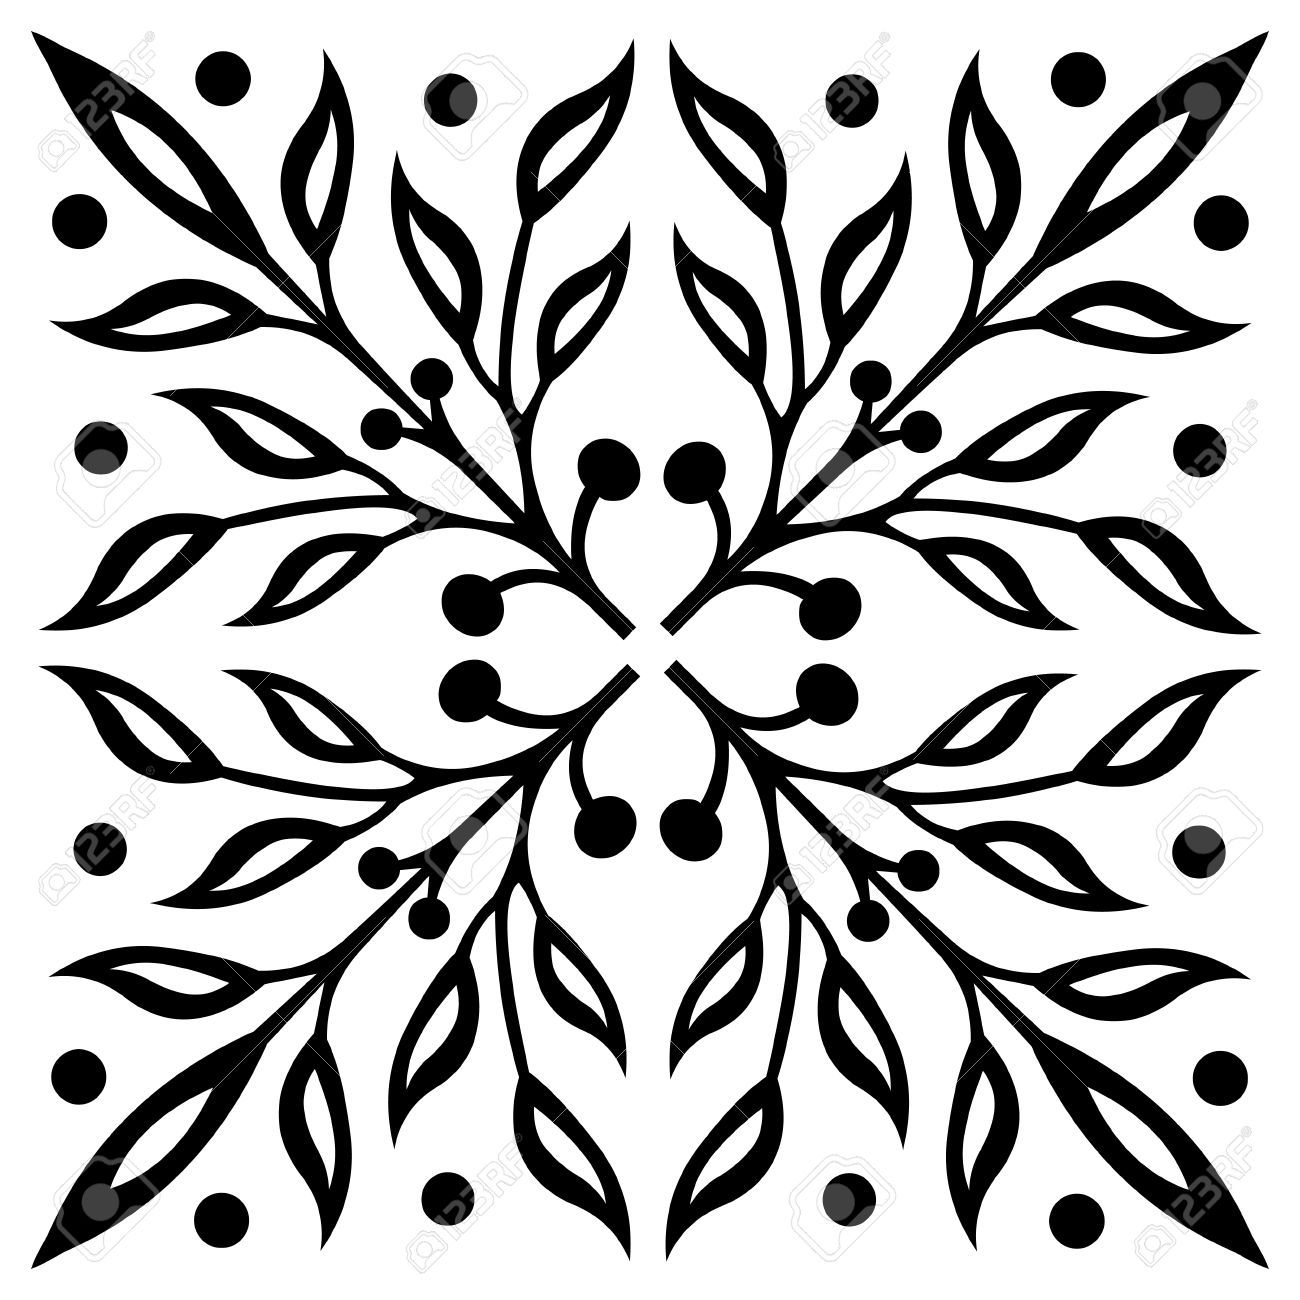 image result for fretwork pattern pattern templates pinterest rh pinterest com vector floral patterns illustrator vector floral pattern